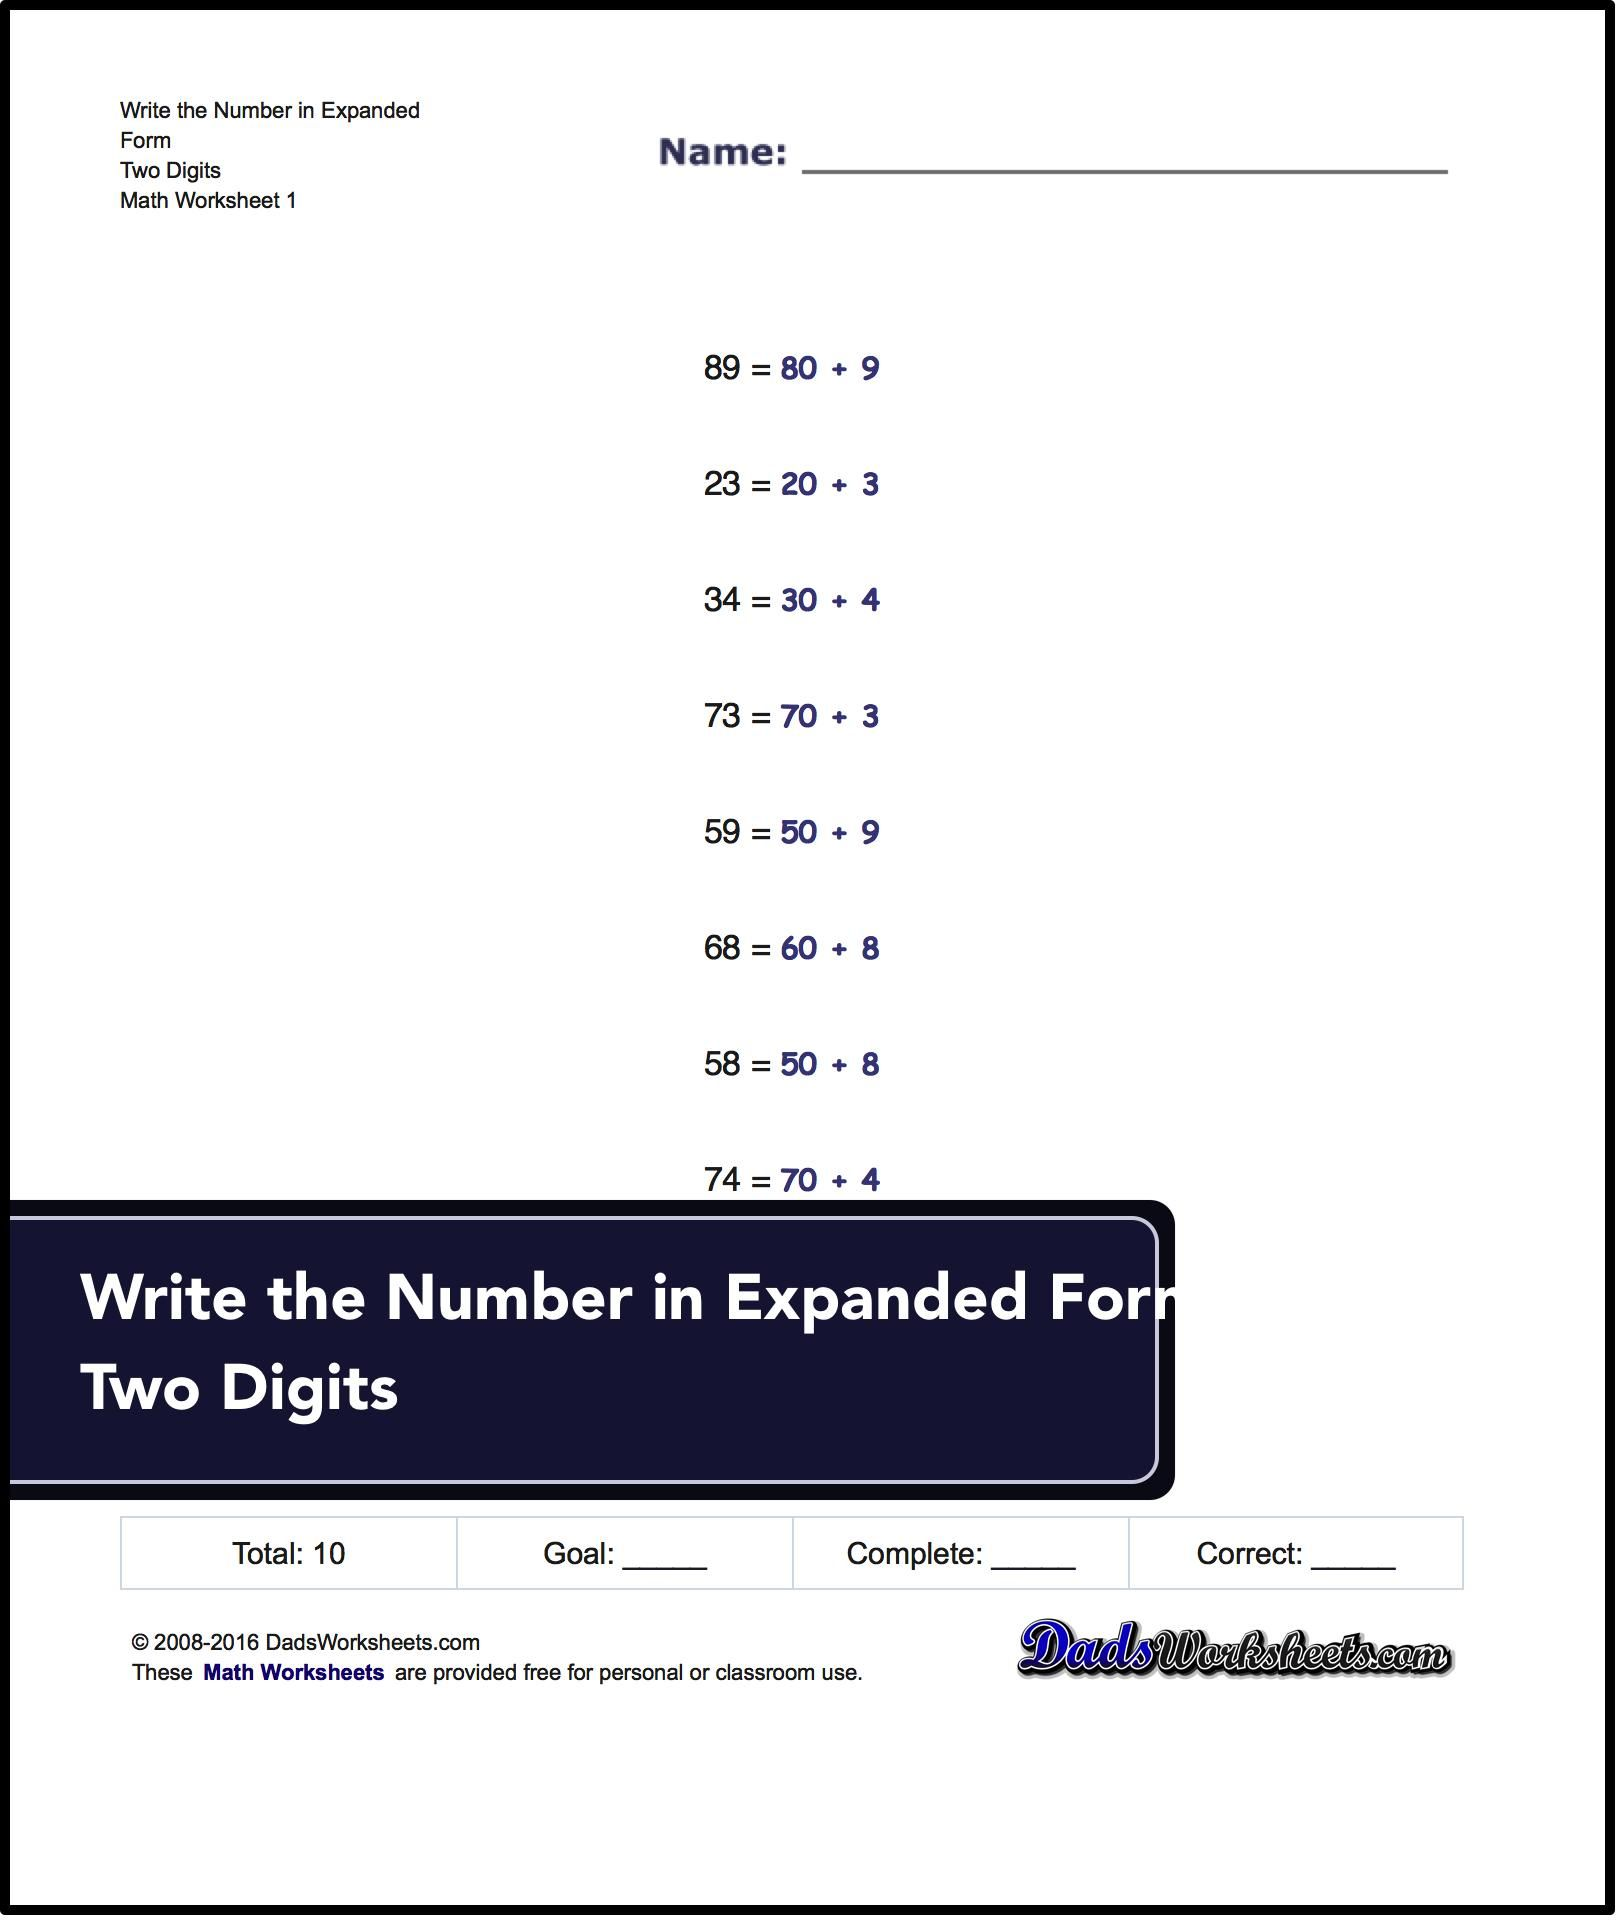 Expanded Form Worksheets For Teaching Place Value Concepts